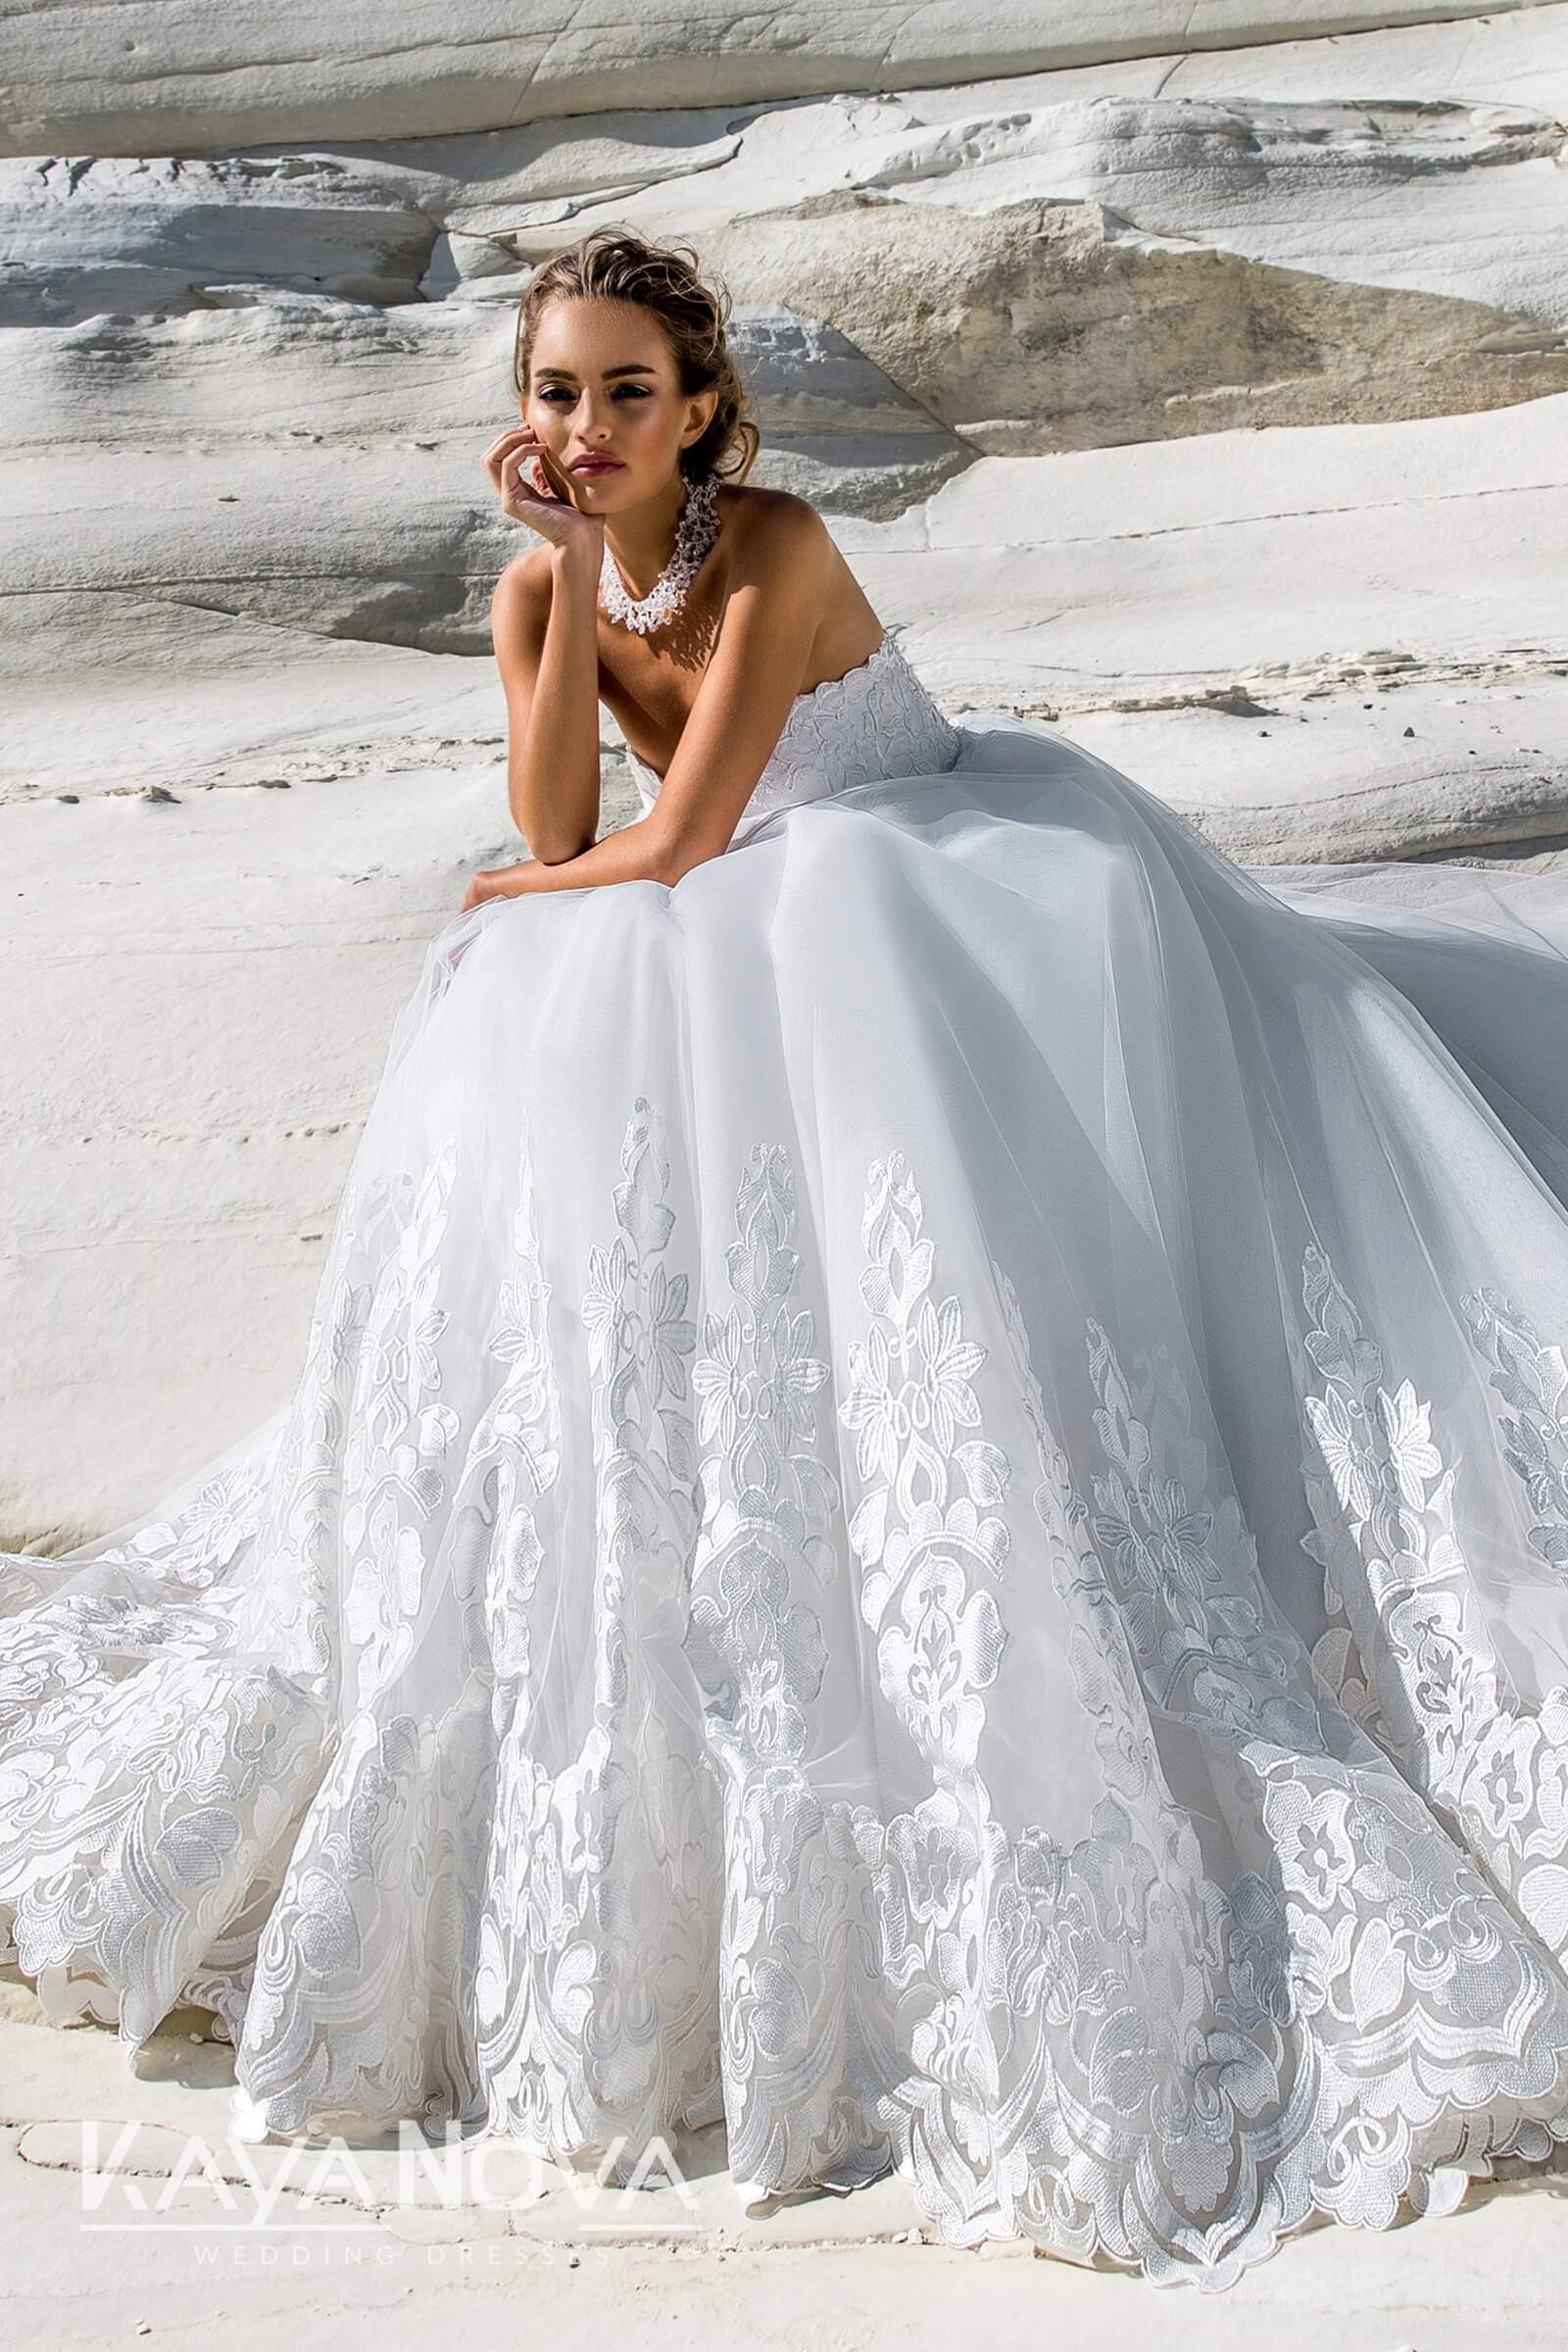 https://kayawedding.com/images/stories/virtuemart/product/Adriana 4_19.jpg